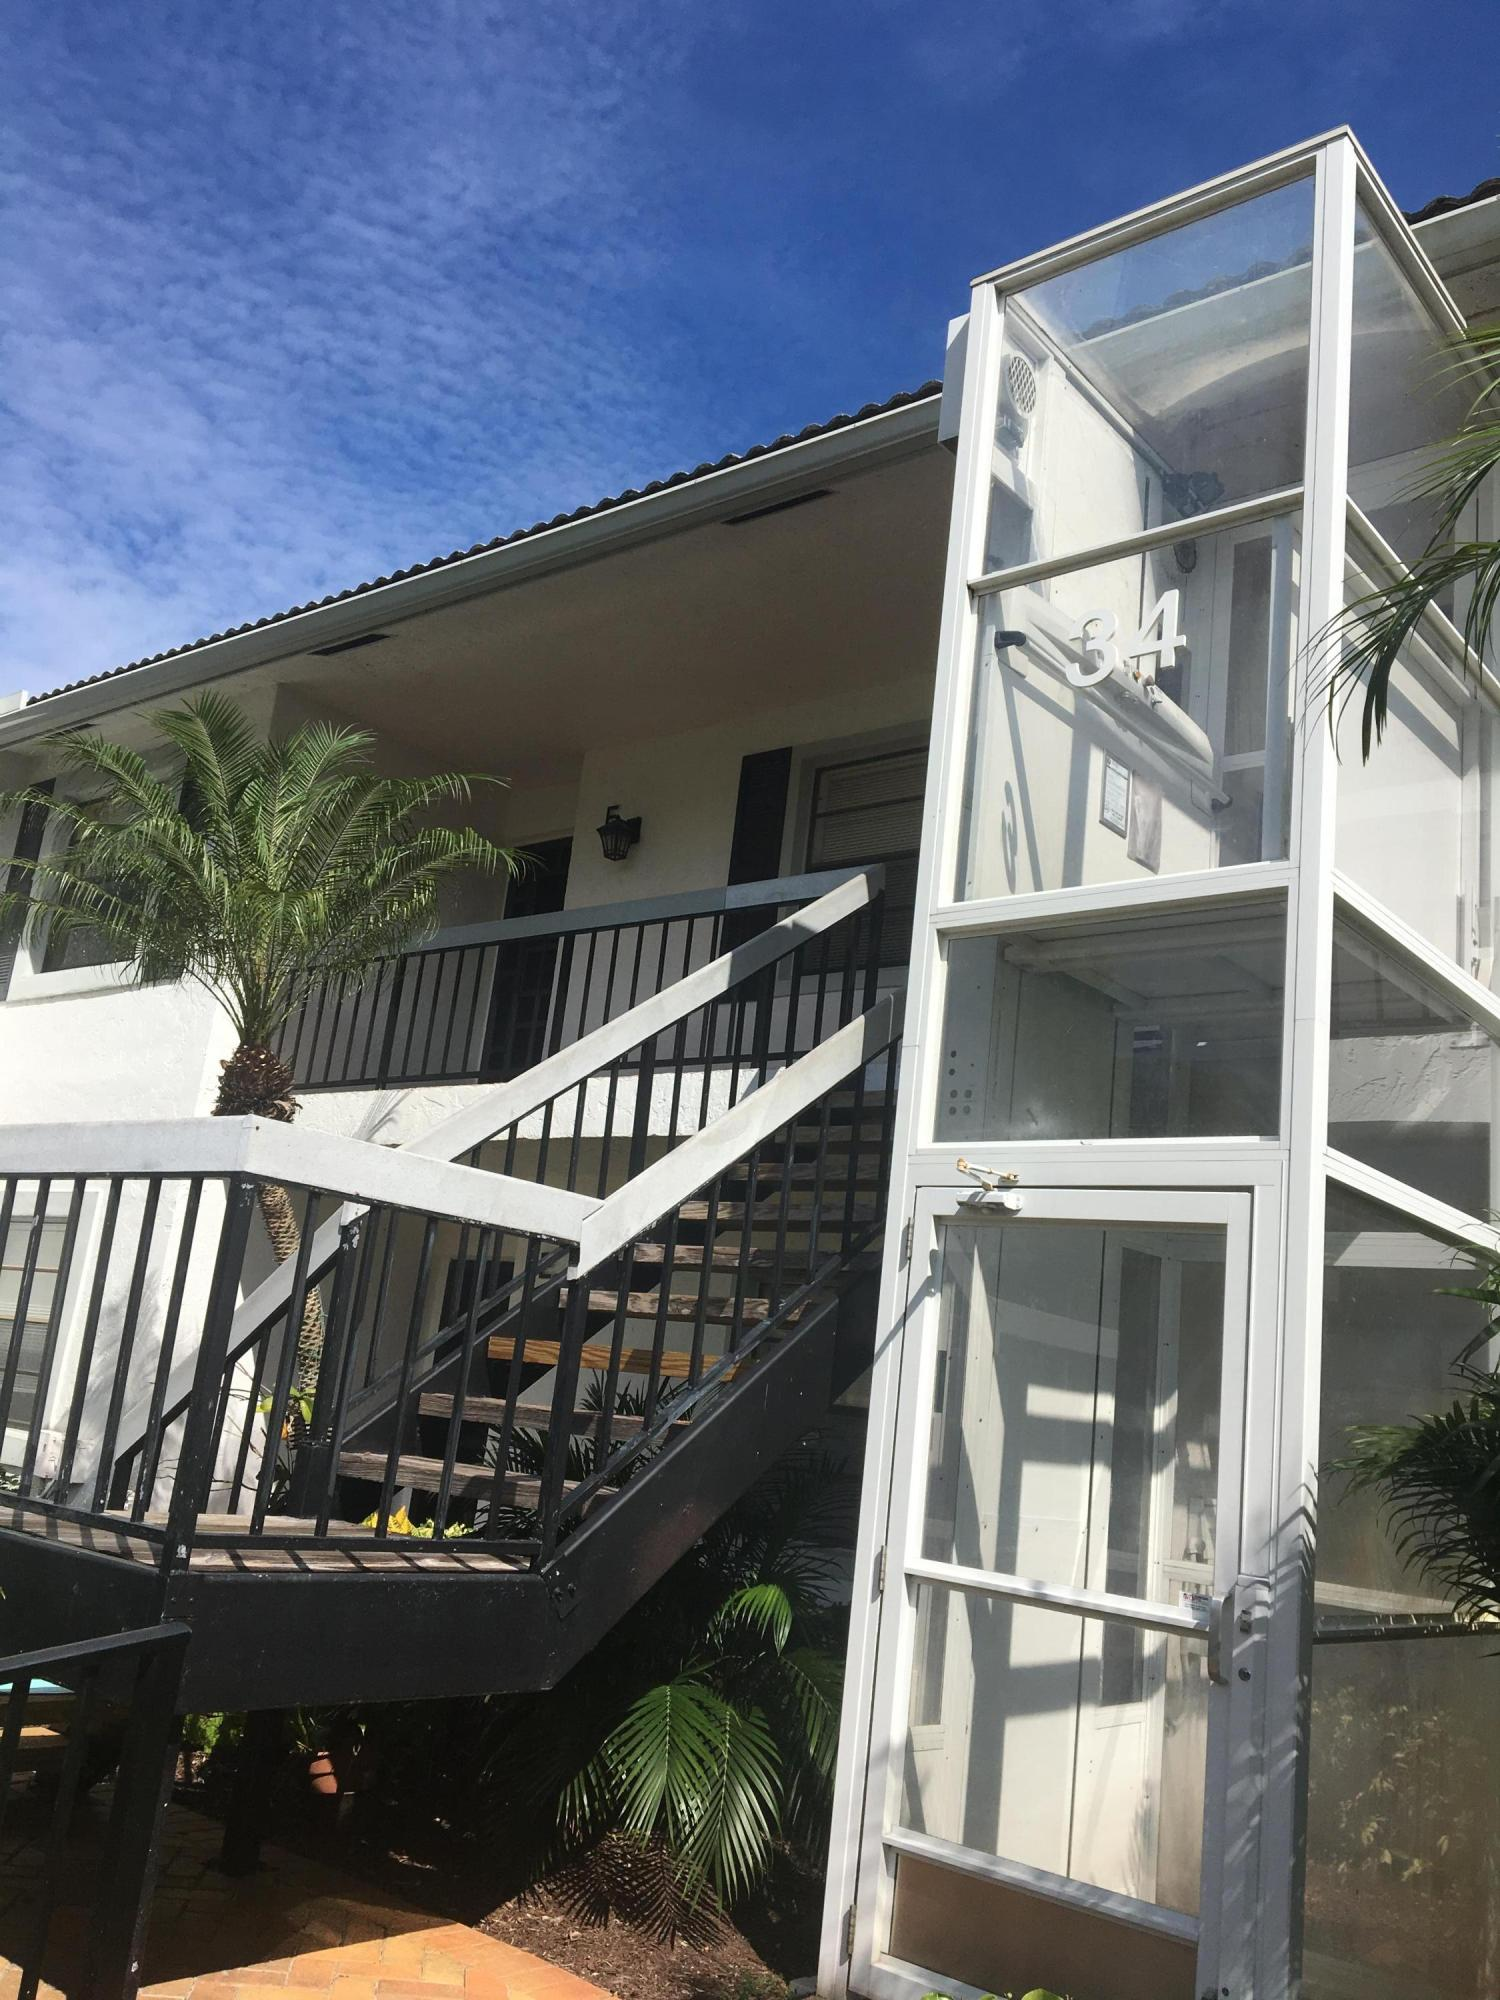 34 Stratford Lane, Boynton Beach, Florida 33436, 2 Bedrooms Bedrooms, ,2 BathroomsBathrooms,Condo/Coop,For Sale,Stratford,2,RX-10464218